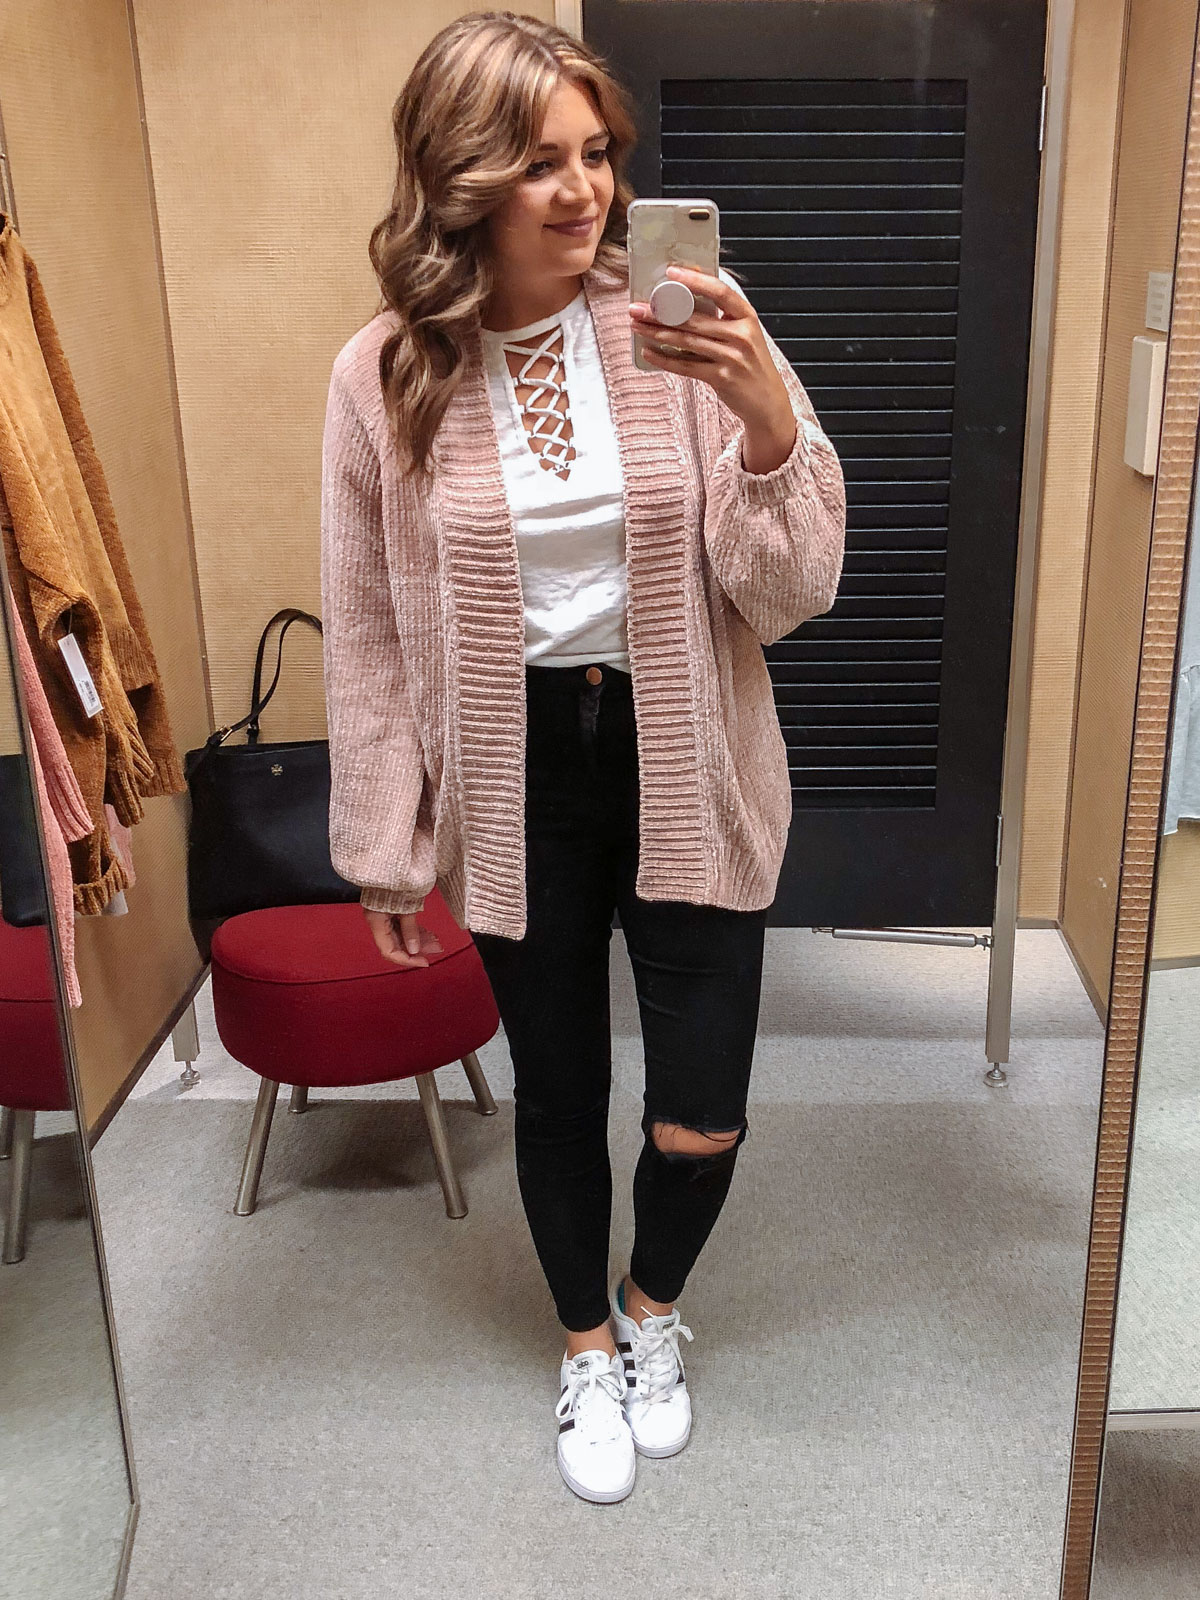 Fall Nordstrom try-on session - fall dressing room diaries | Huge fall try-on session! See my picks from Nordstrom, Shopbop, Loft, and H&M! bylaurenm.com